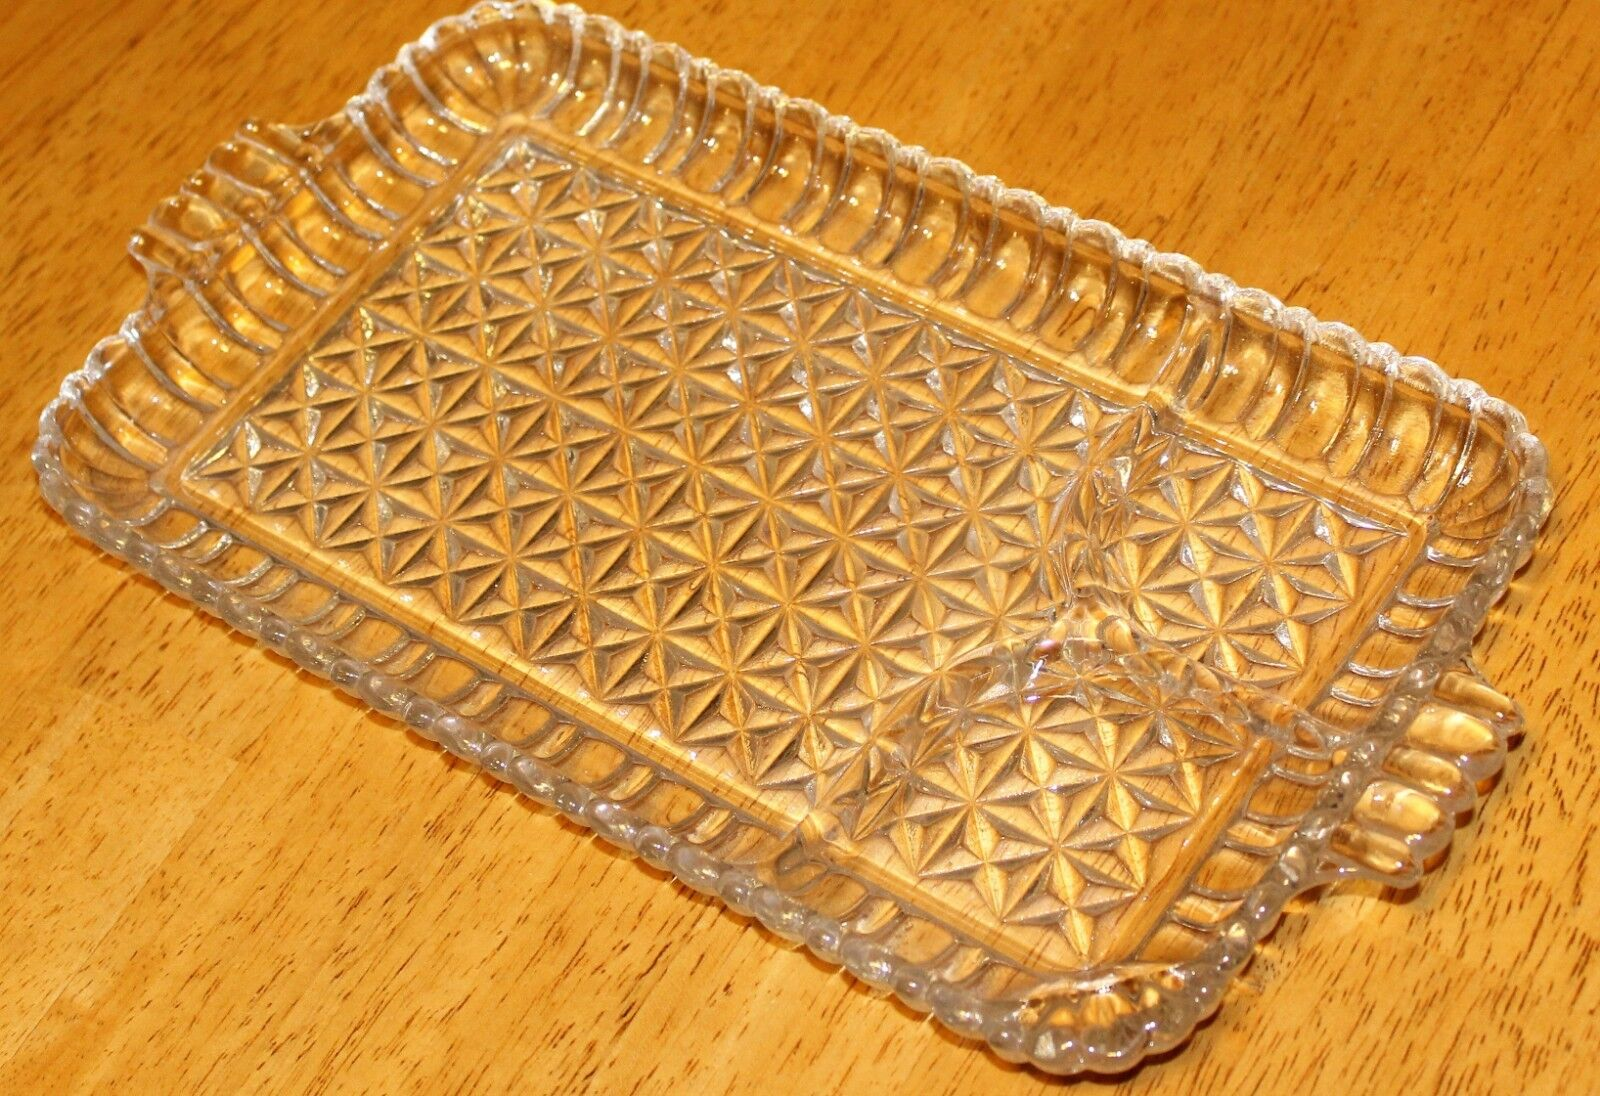 Anchor Hocking SERVA SNACK CLEAR SQUARES/DIAMONDS SNACK SET 1950-60 s 8Pc  - $14.89